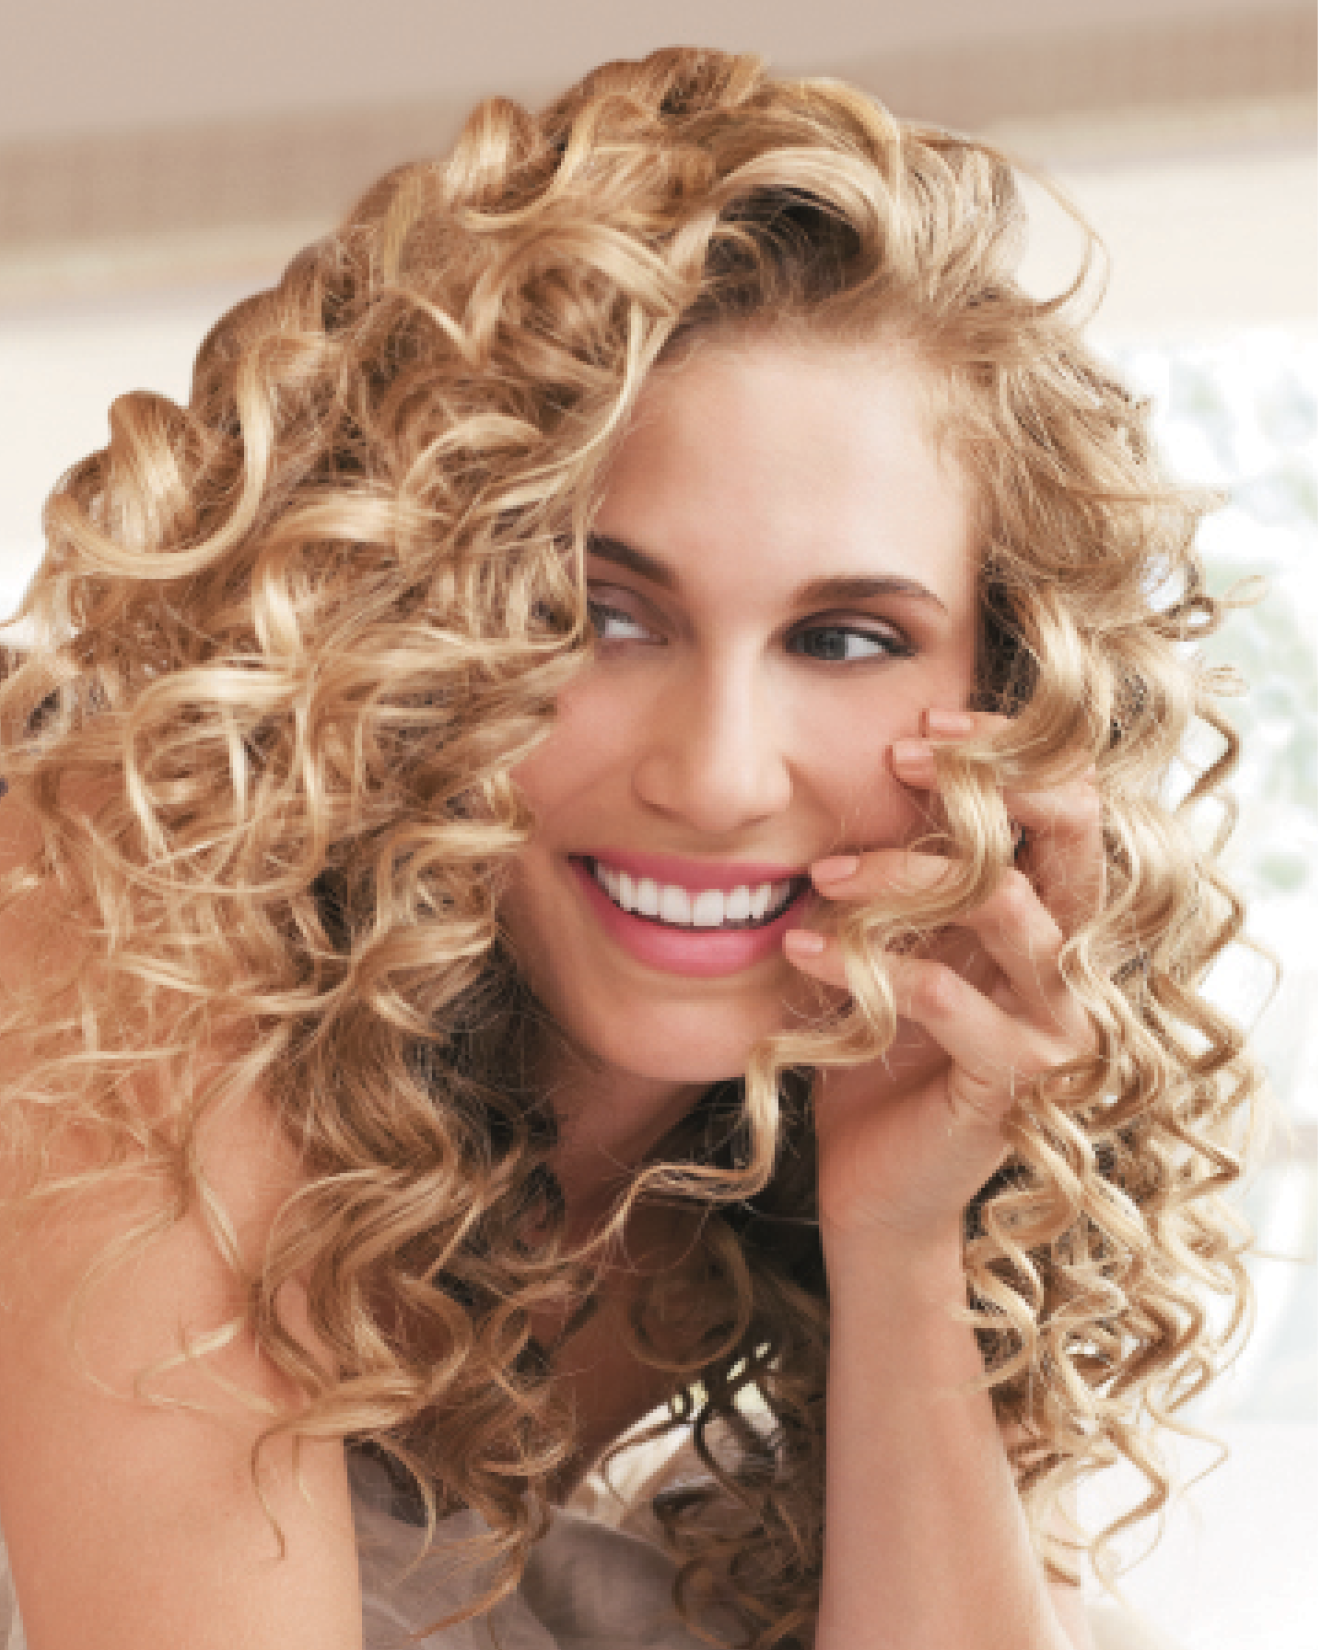 Markham and Wilson prepped natural curls with blonde highlights with TruCurl Curl Perfecting Shampoo and Condition before mixing TruCurl Curl Perfecting Crème and TruCurl Anti-Frizz Oil and applying it to damp hair. After diffusing hair until completely dry, they wrapped 1-inch hair sections around closed-barrel curling irons, alternating between small and very small sizes in clockwise and counterclockwise directions.